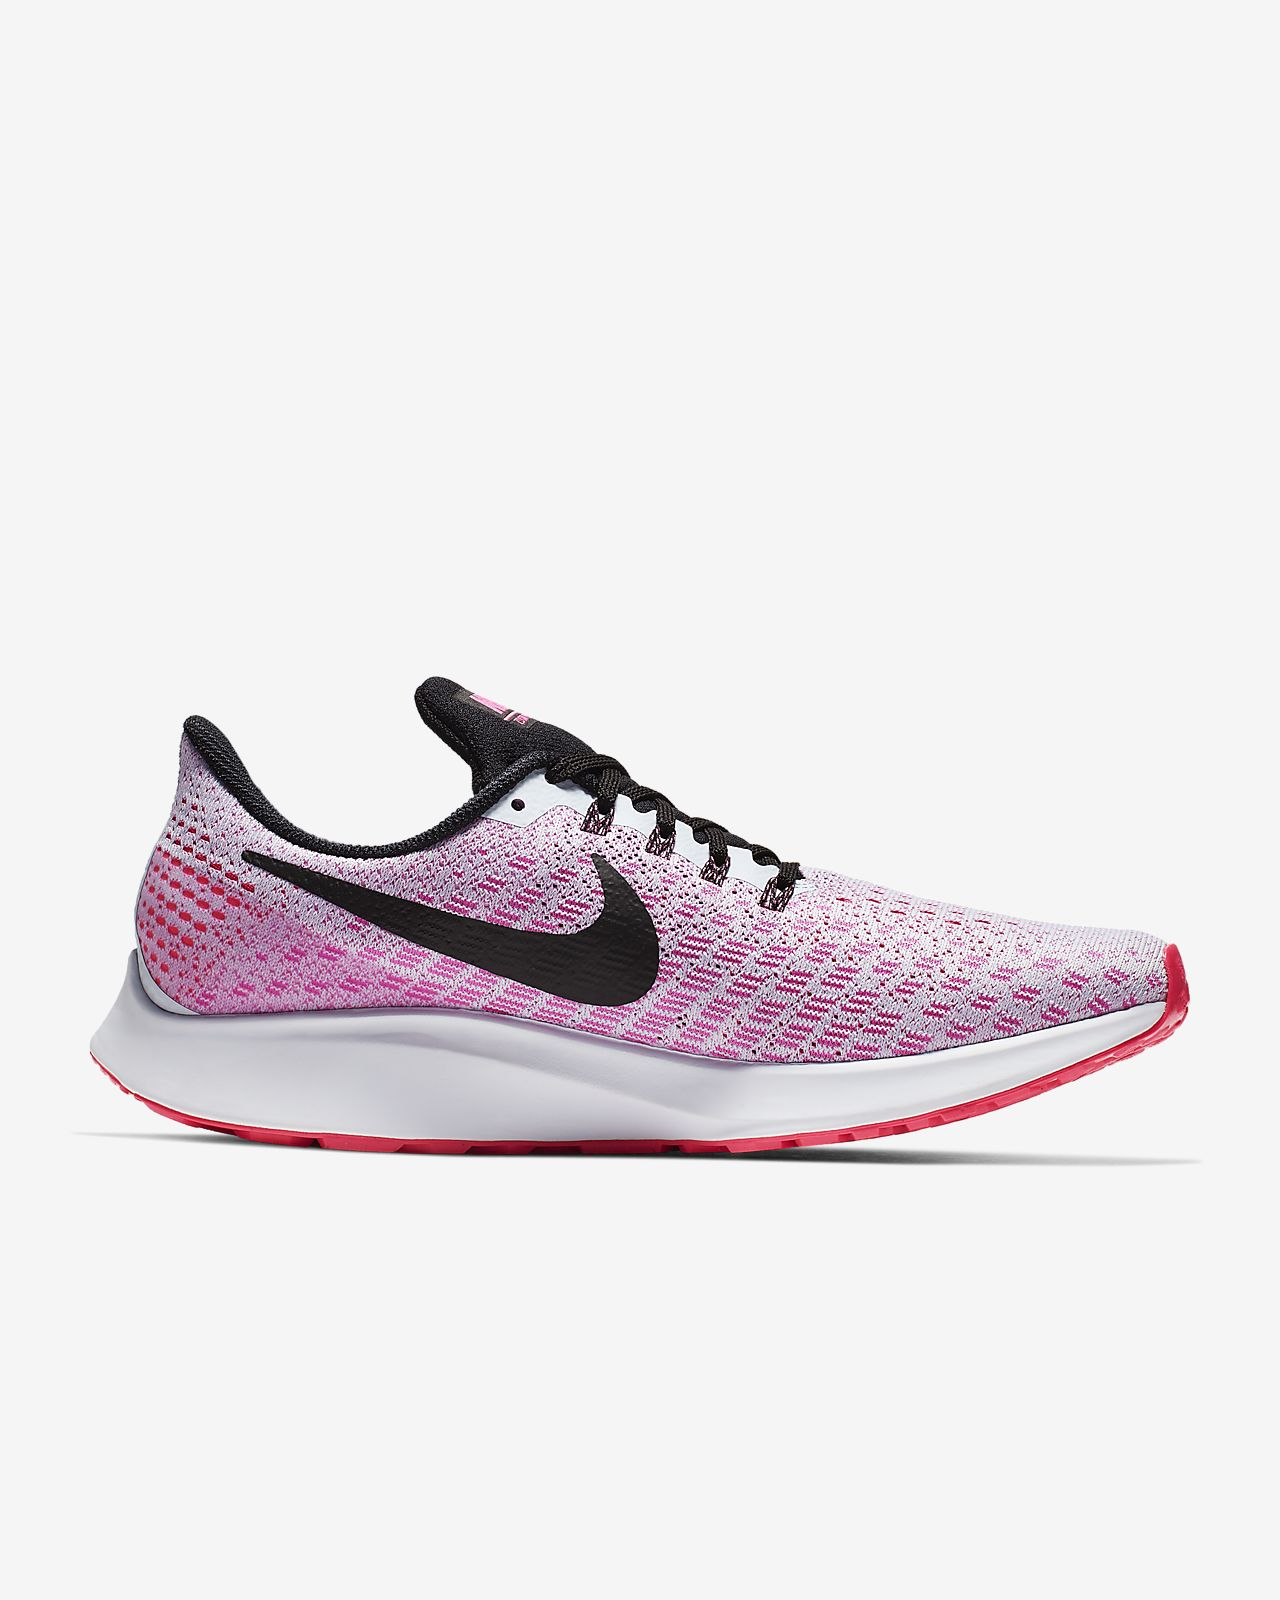 new product 2a96b ce2b7 ... Chaussure de running Nike Air Zoom Pegasus 35 pour Femme